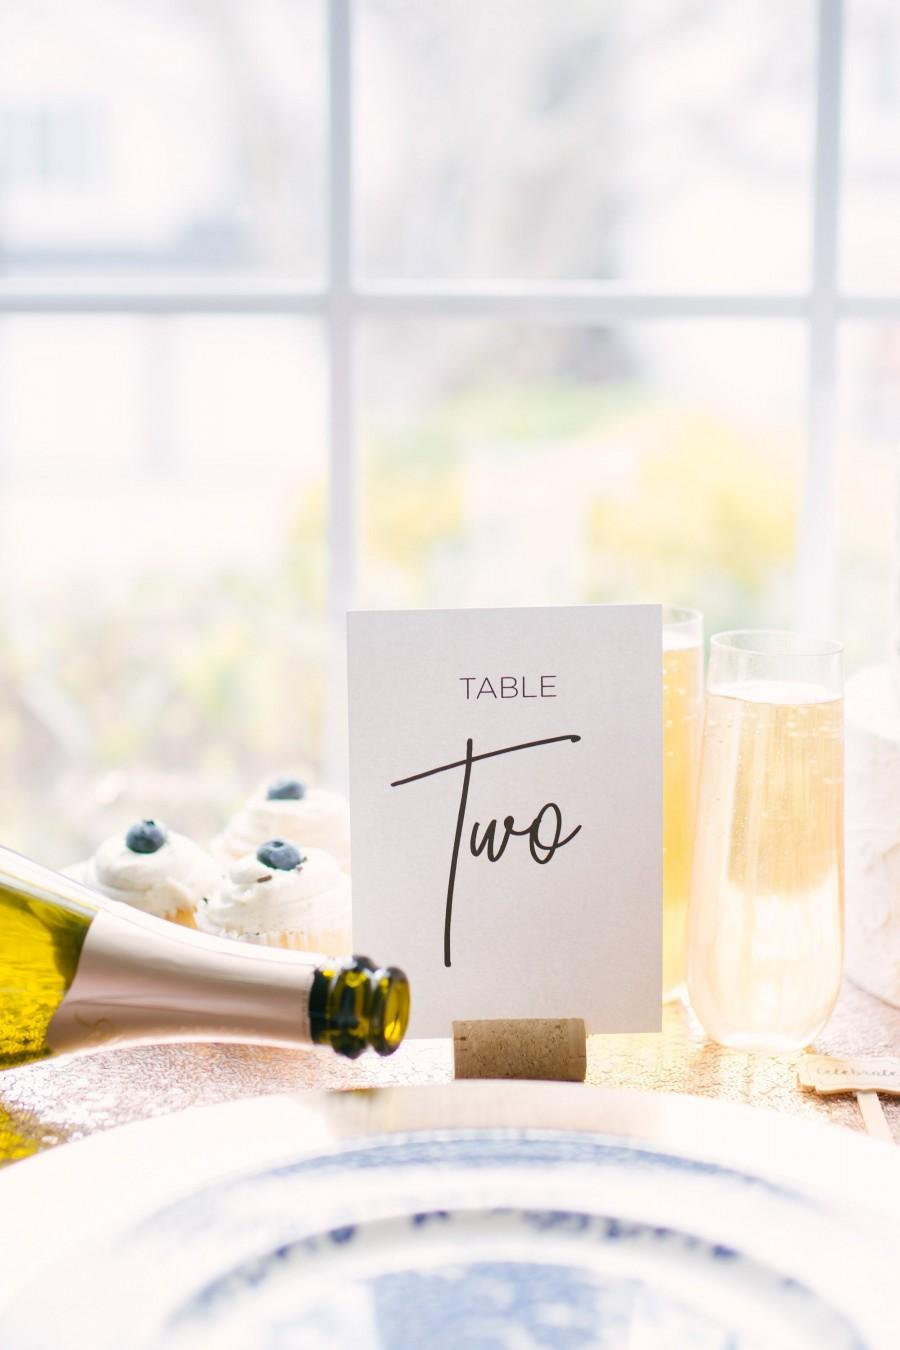 Hochzeit - Wedding Table Numbers, For Wedding Tables, Table Numbers Black and White, Table Number Ideas, Table Numbers Printed, Engagement Cards